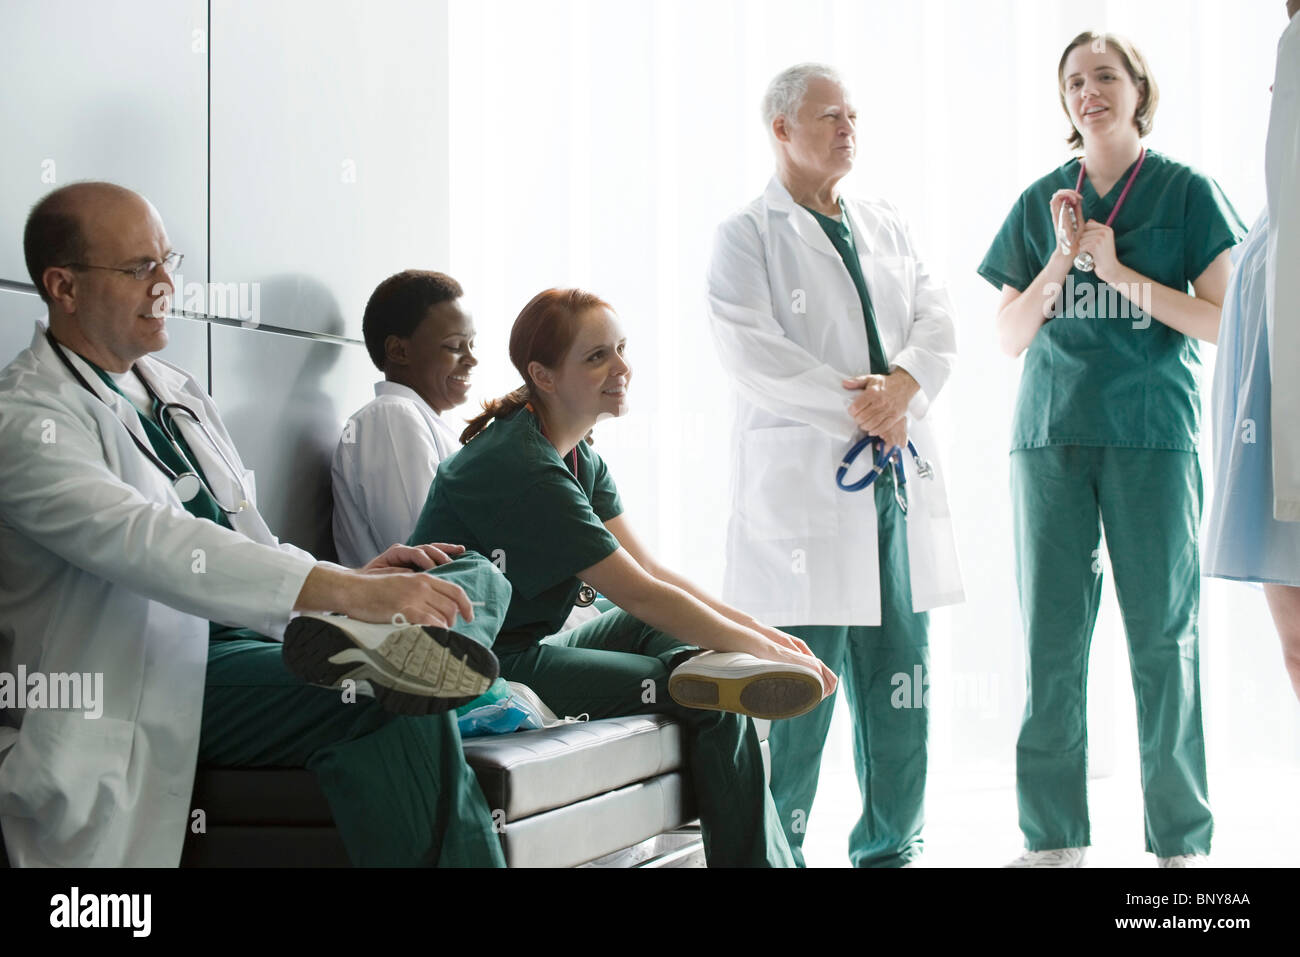 Healthcare workers chatting while on strike - Stock Image